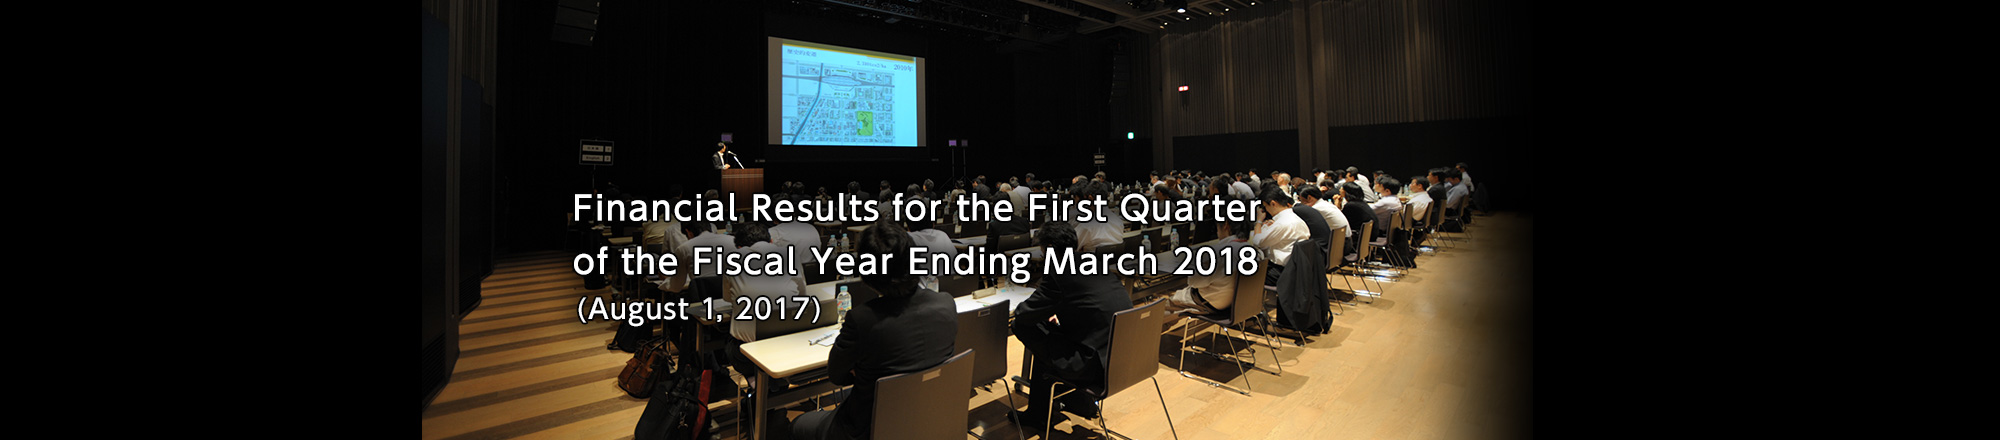 Financial Results for the First Quarter of the Fiscal Year Ending March 2018 (August 1, 2017)